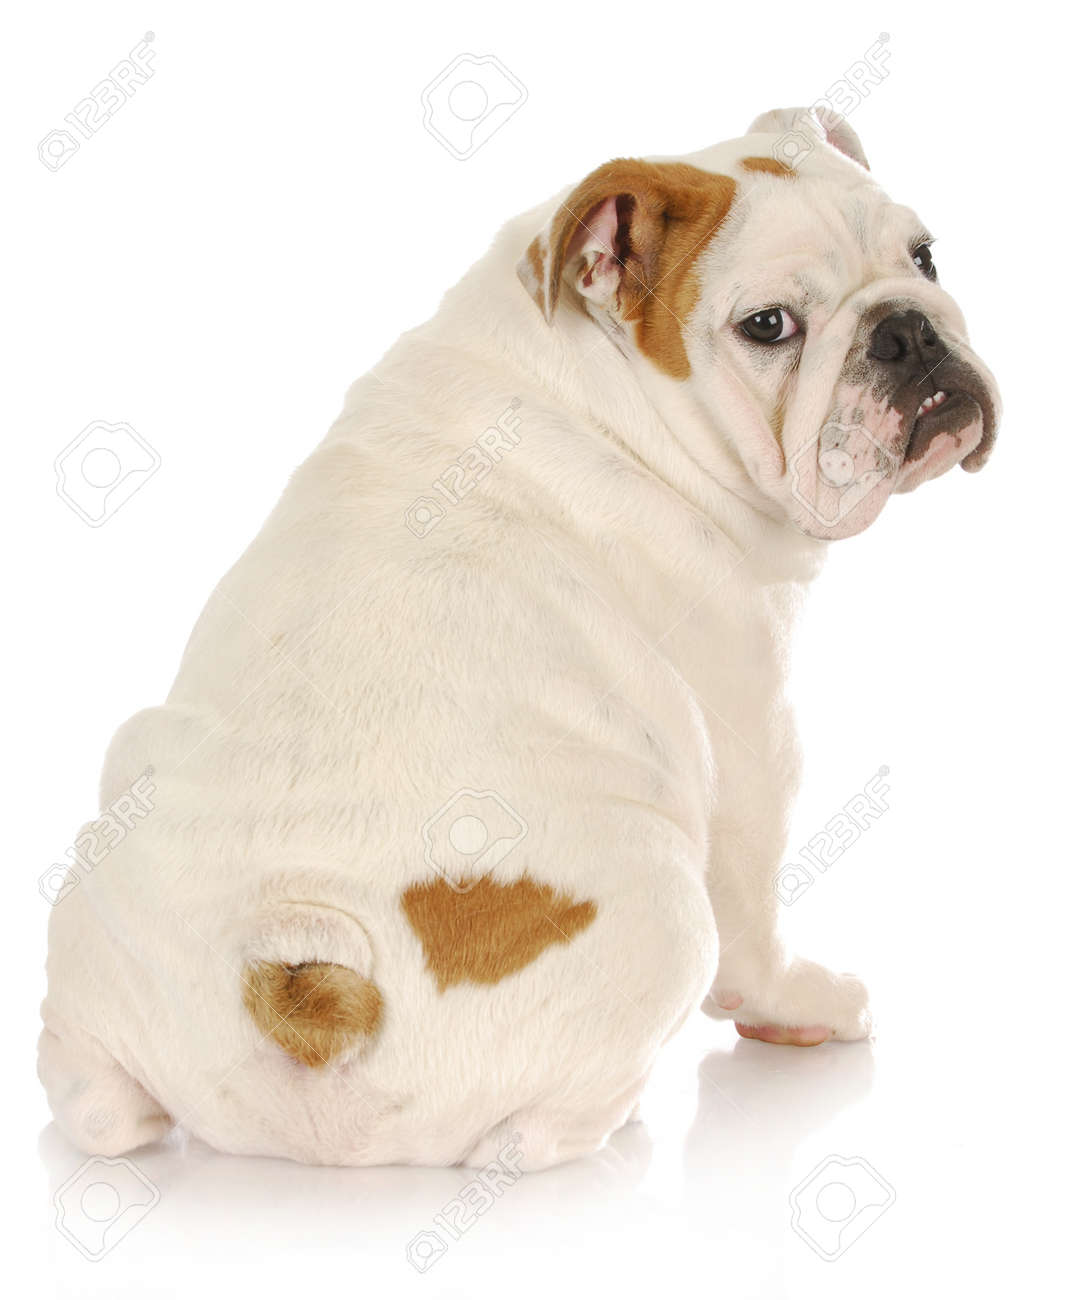 english bulldog puppy looking over shoulder on white background - 4 months old Stock Photo - 9738756